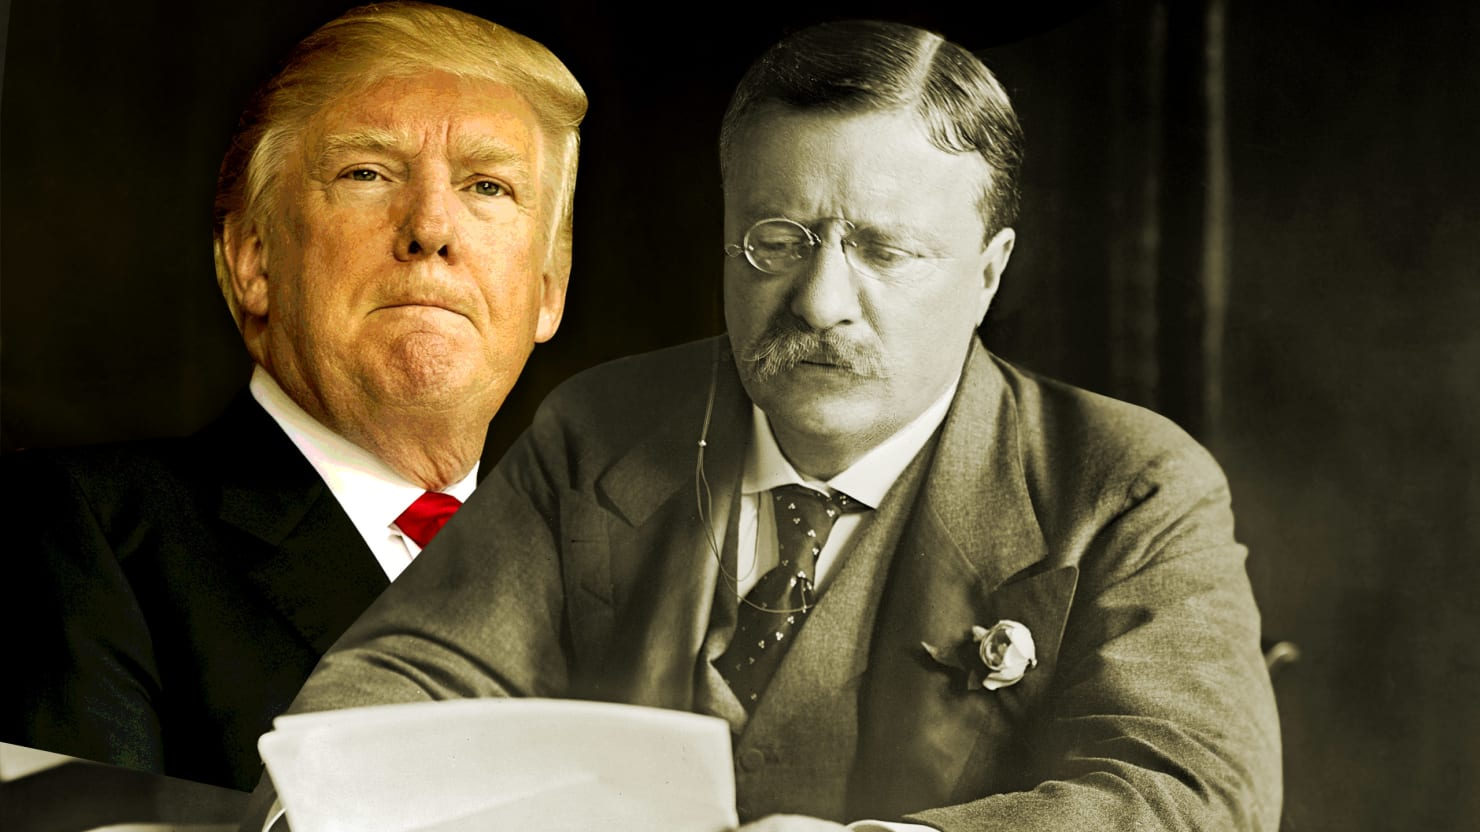 Uh, John Boehner: Trump Is the Opposite of Teddy Roosevelt